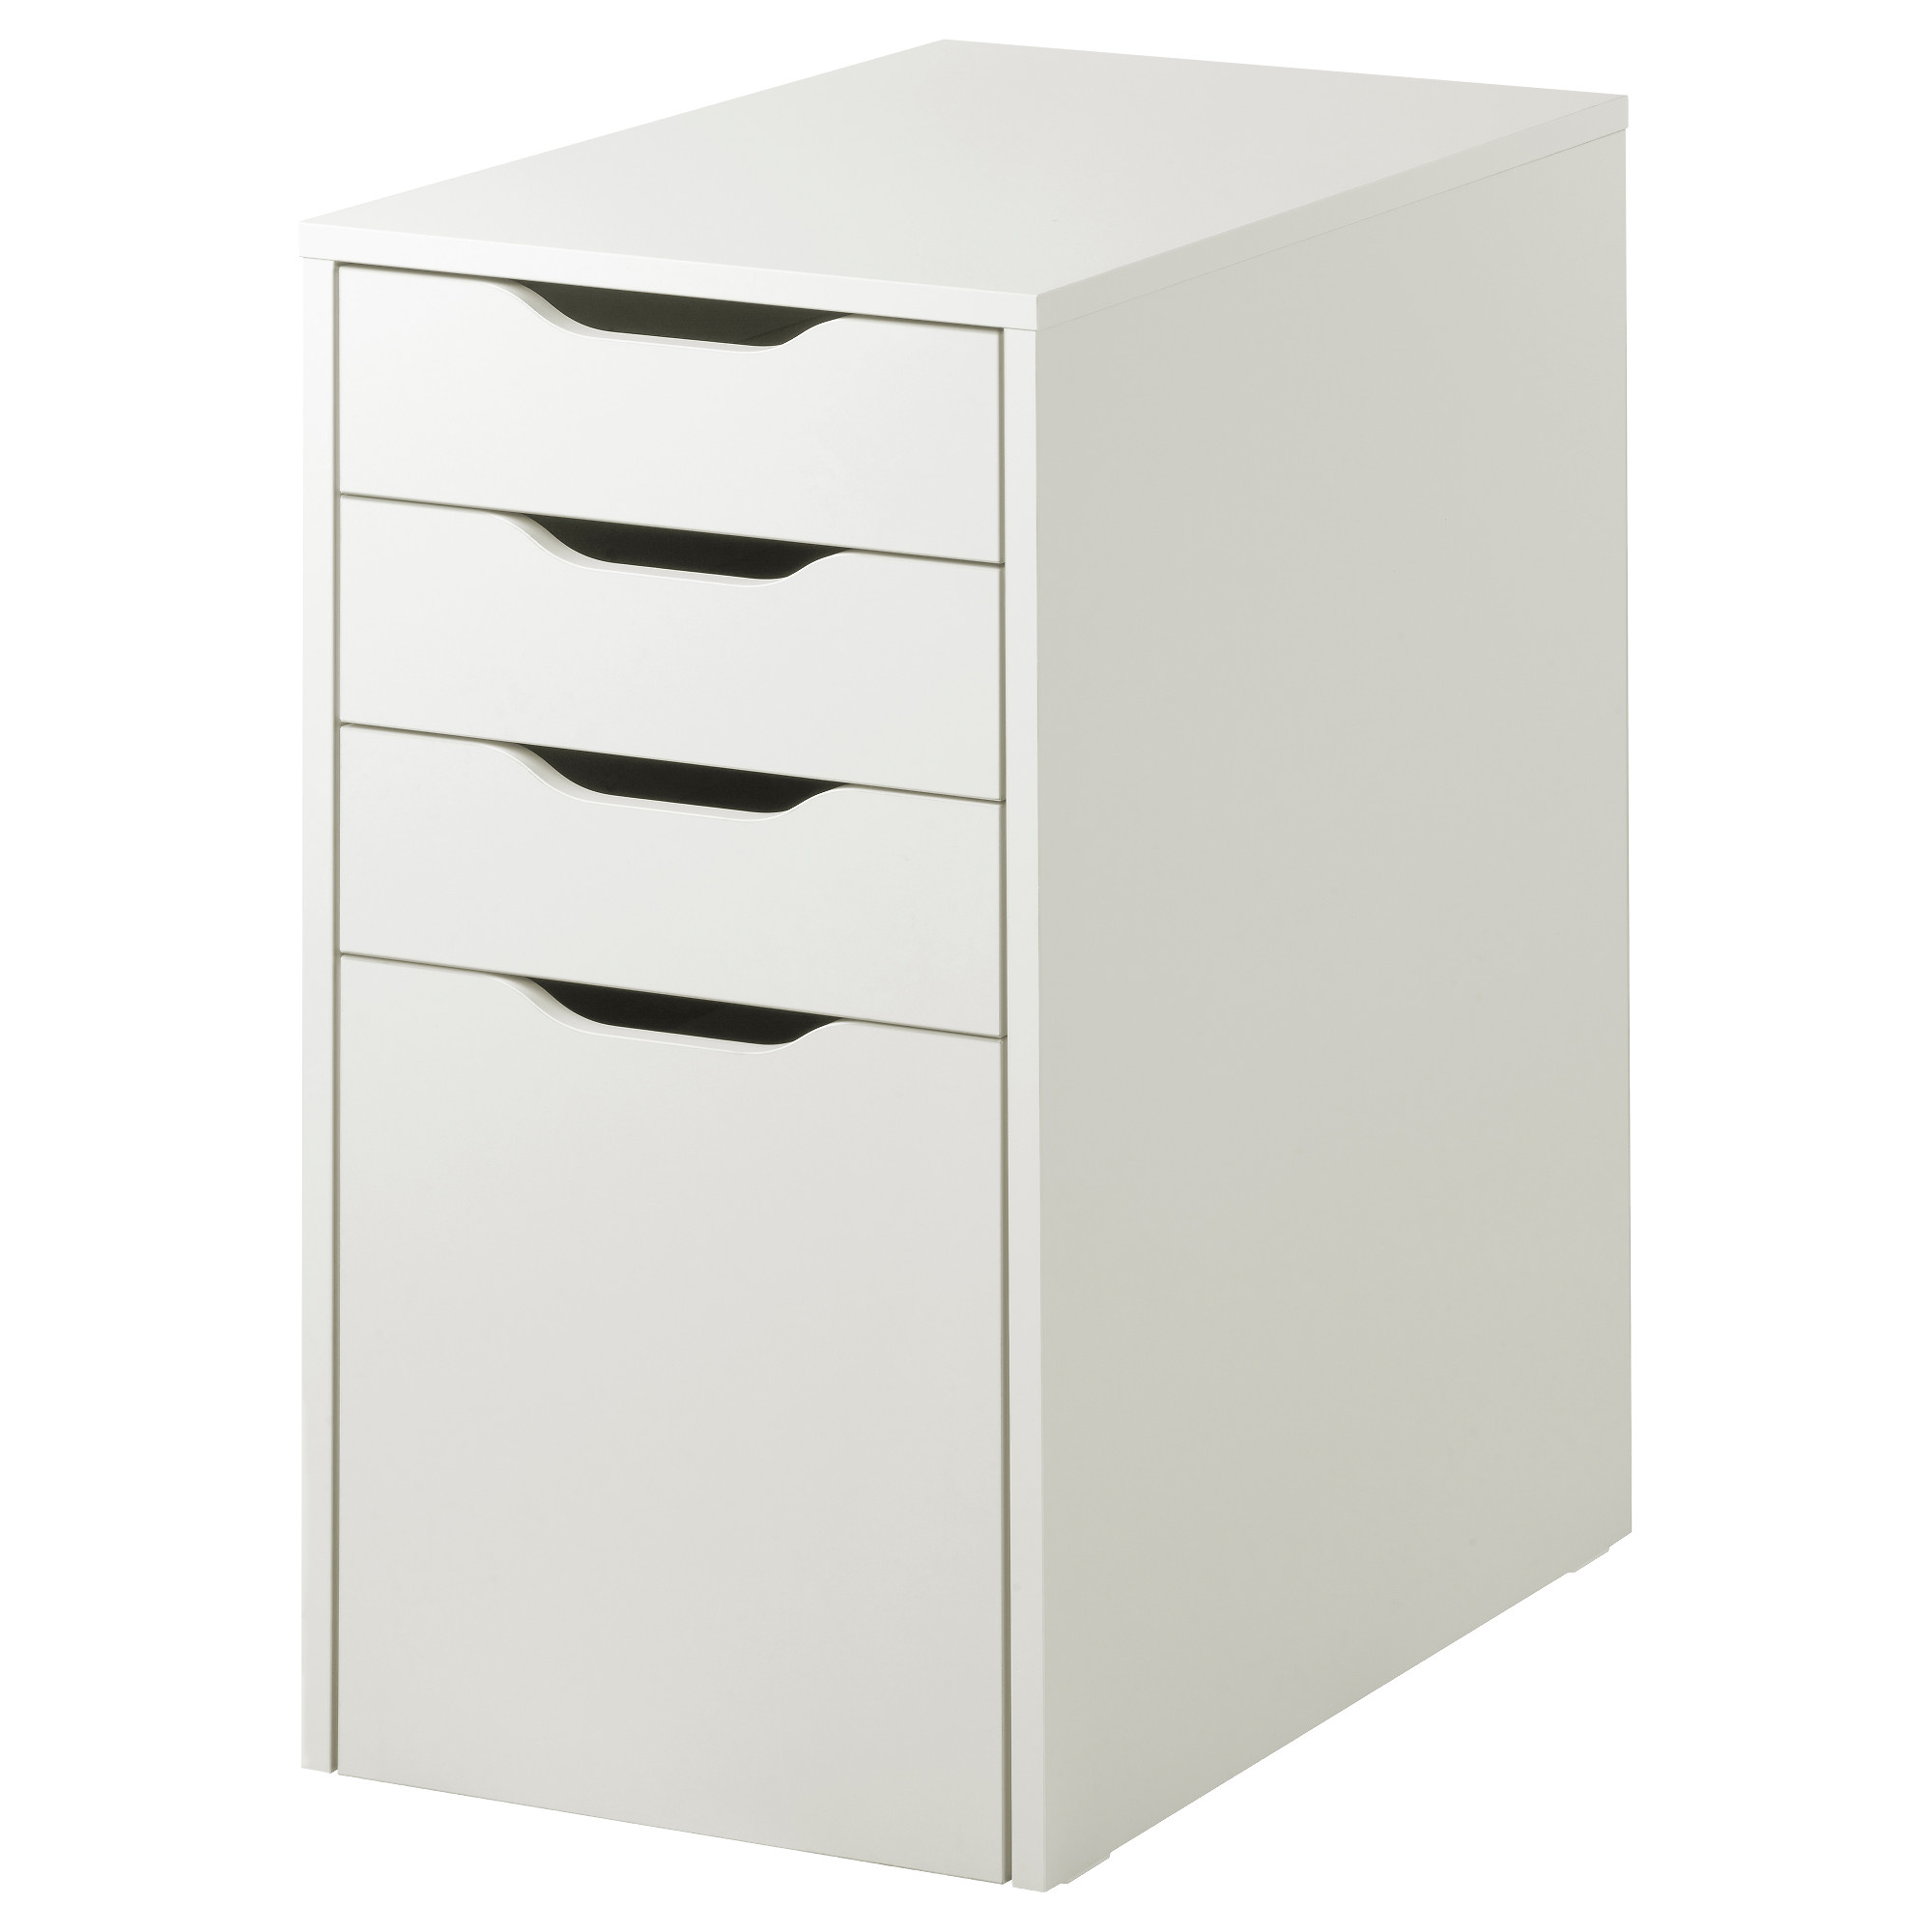 Interior Ikea White Cabinet alex drawer unitdrop file storage white ikea